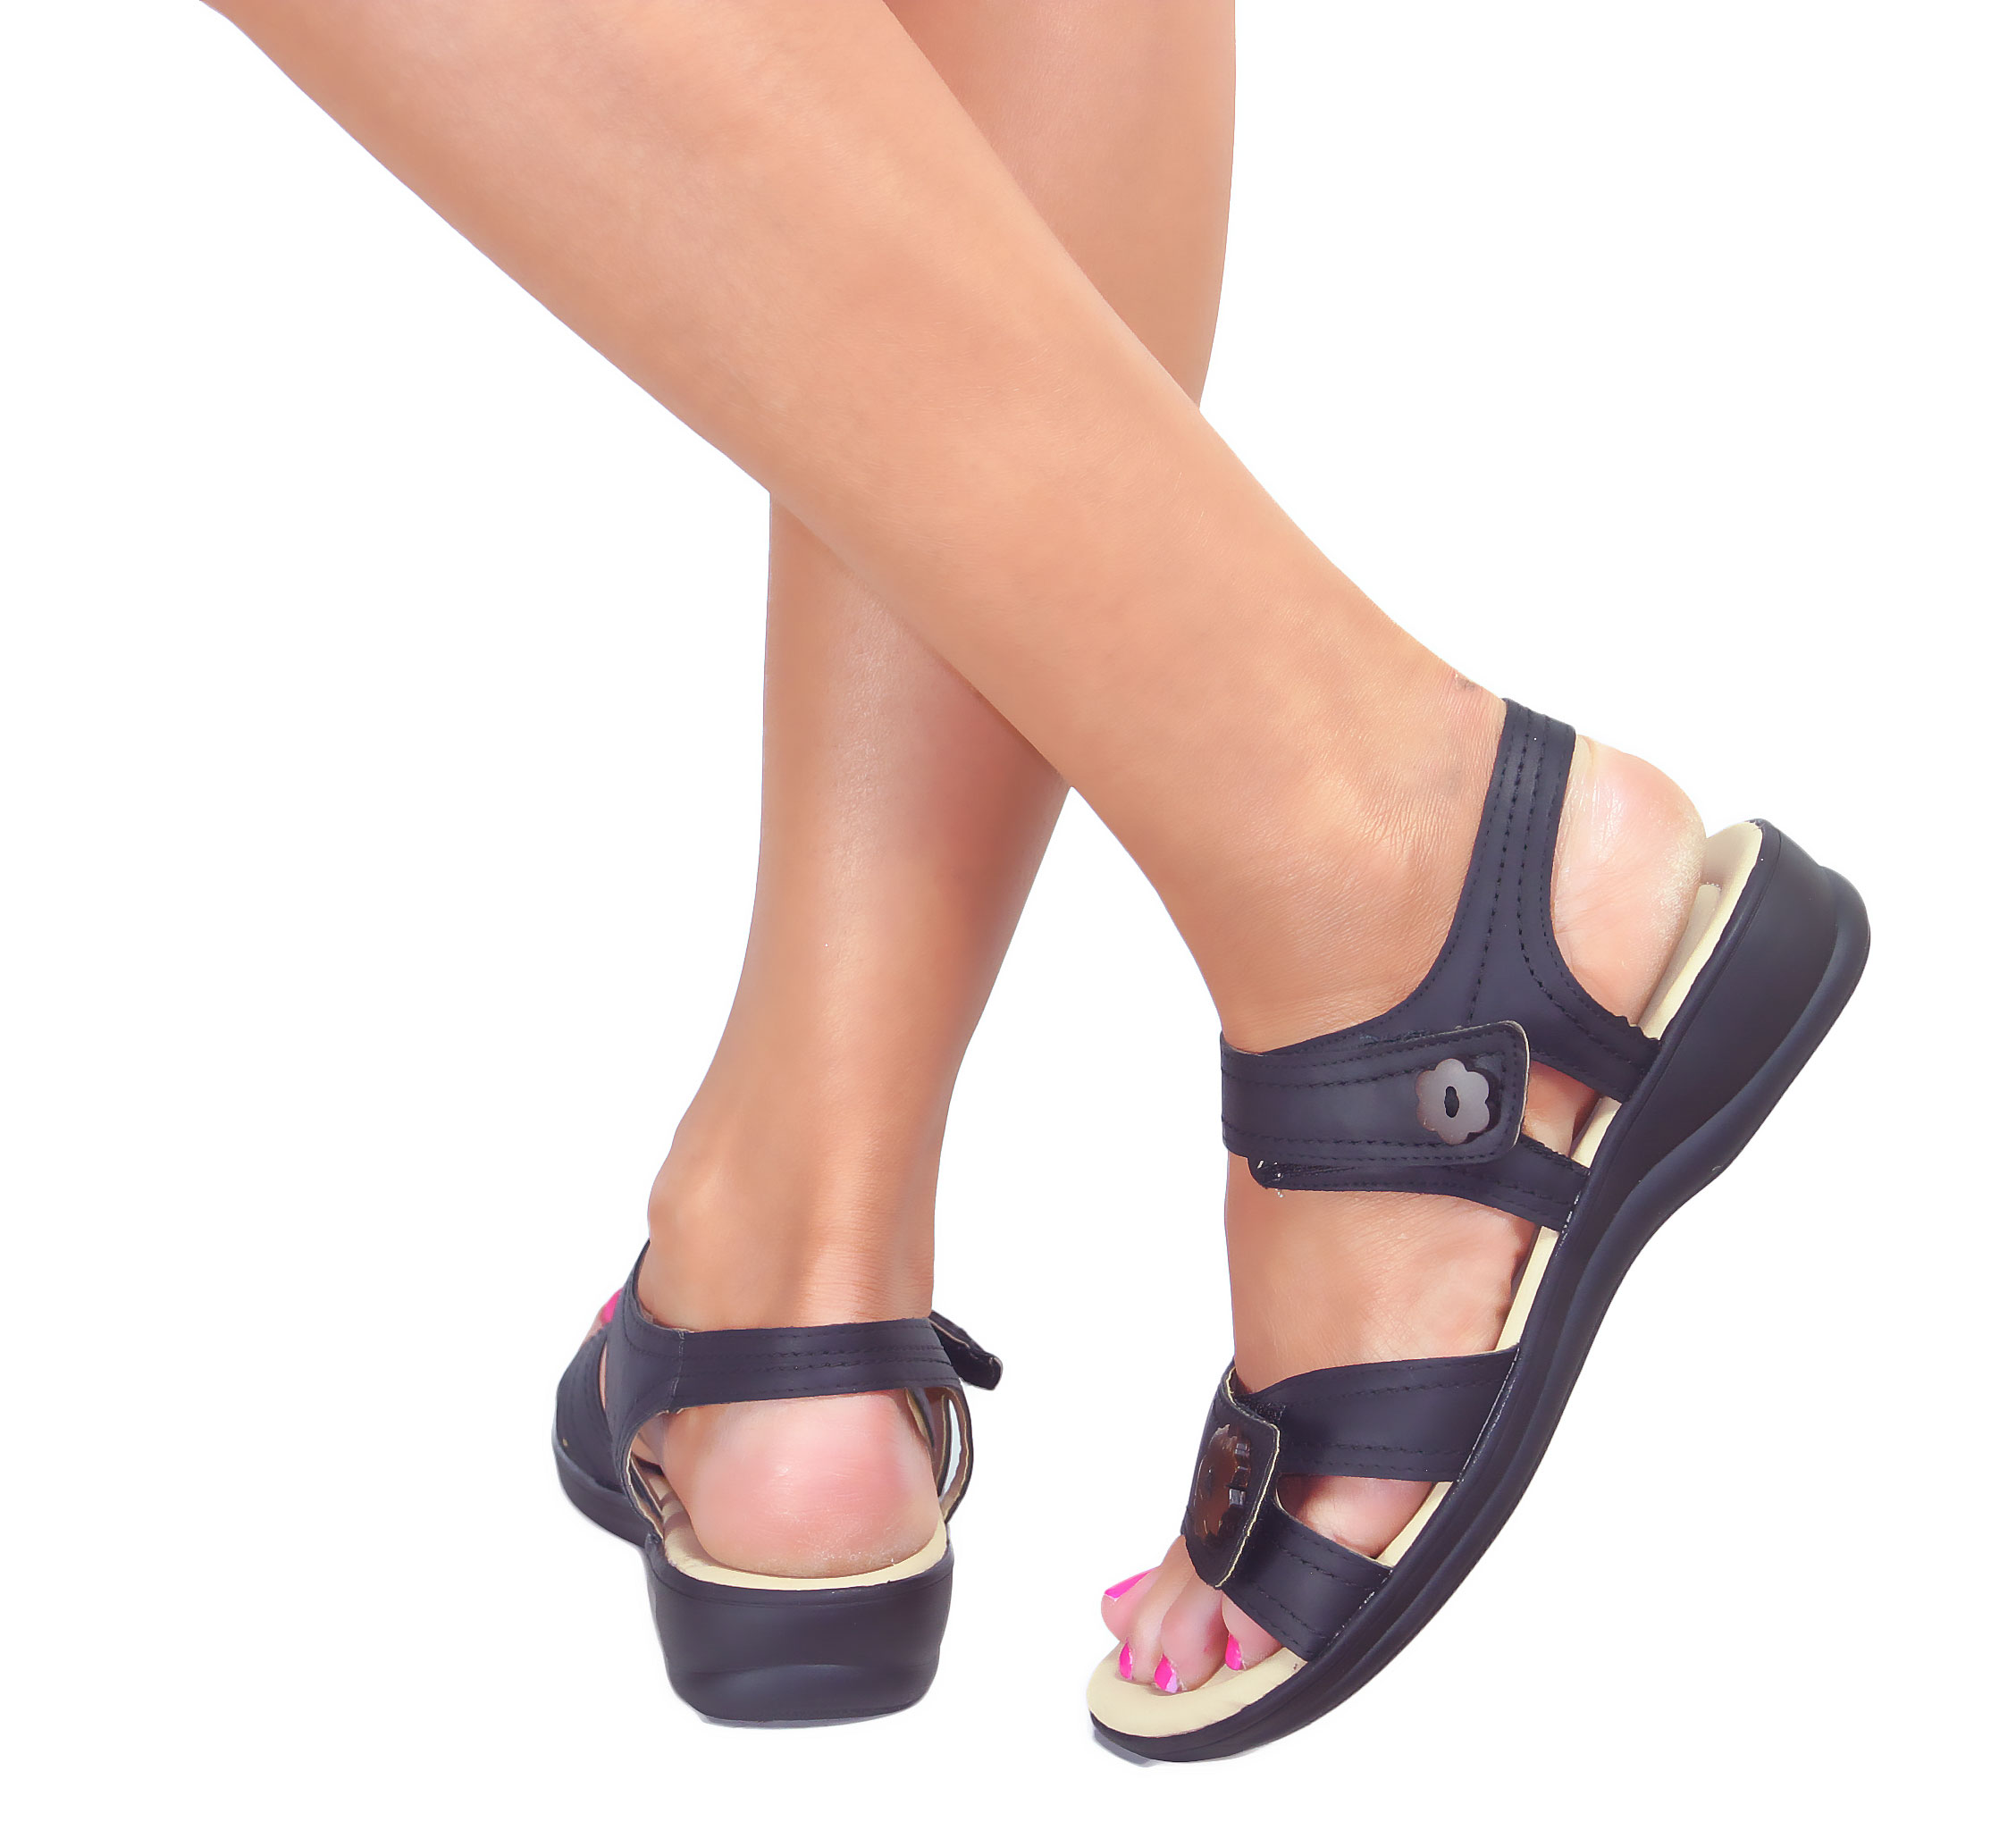 Womens Shoes That Fit